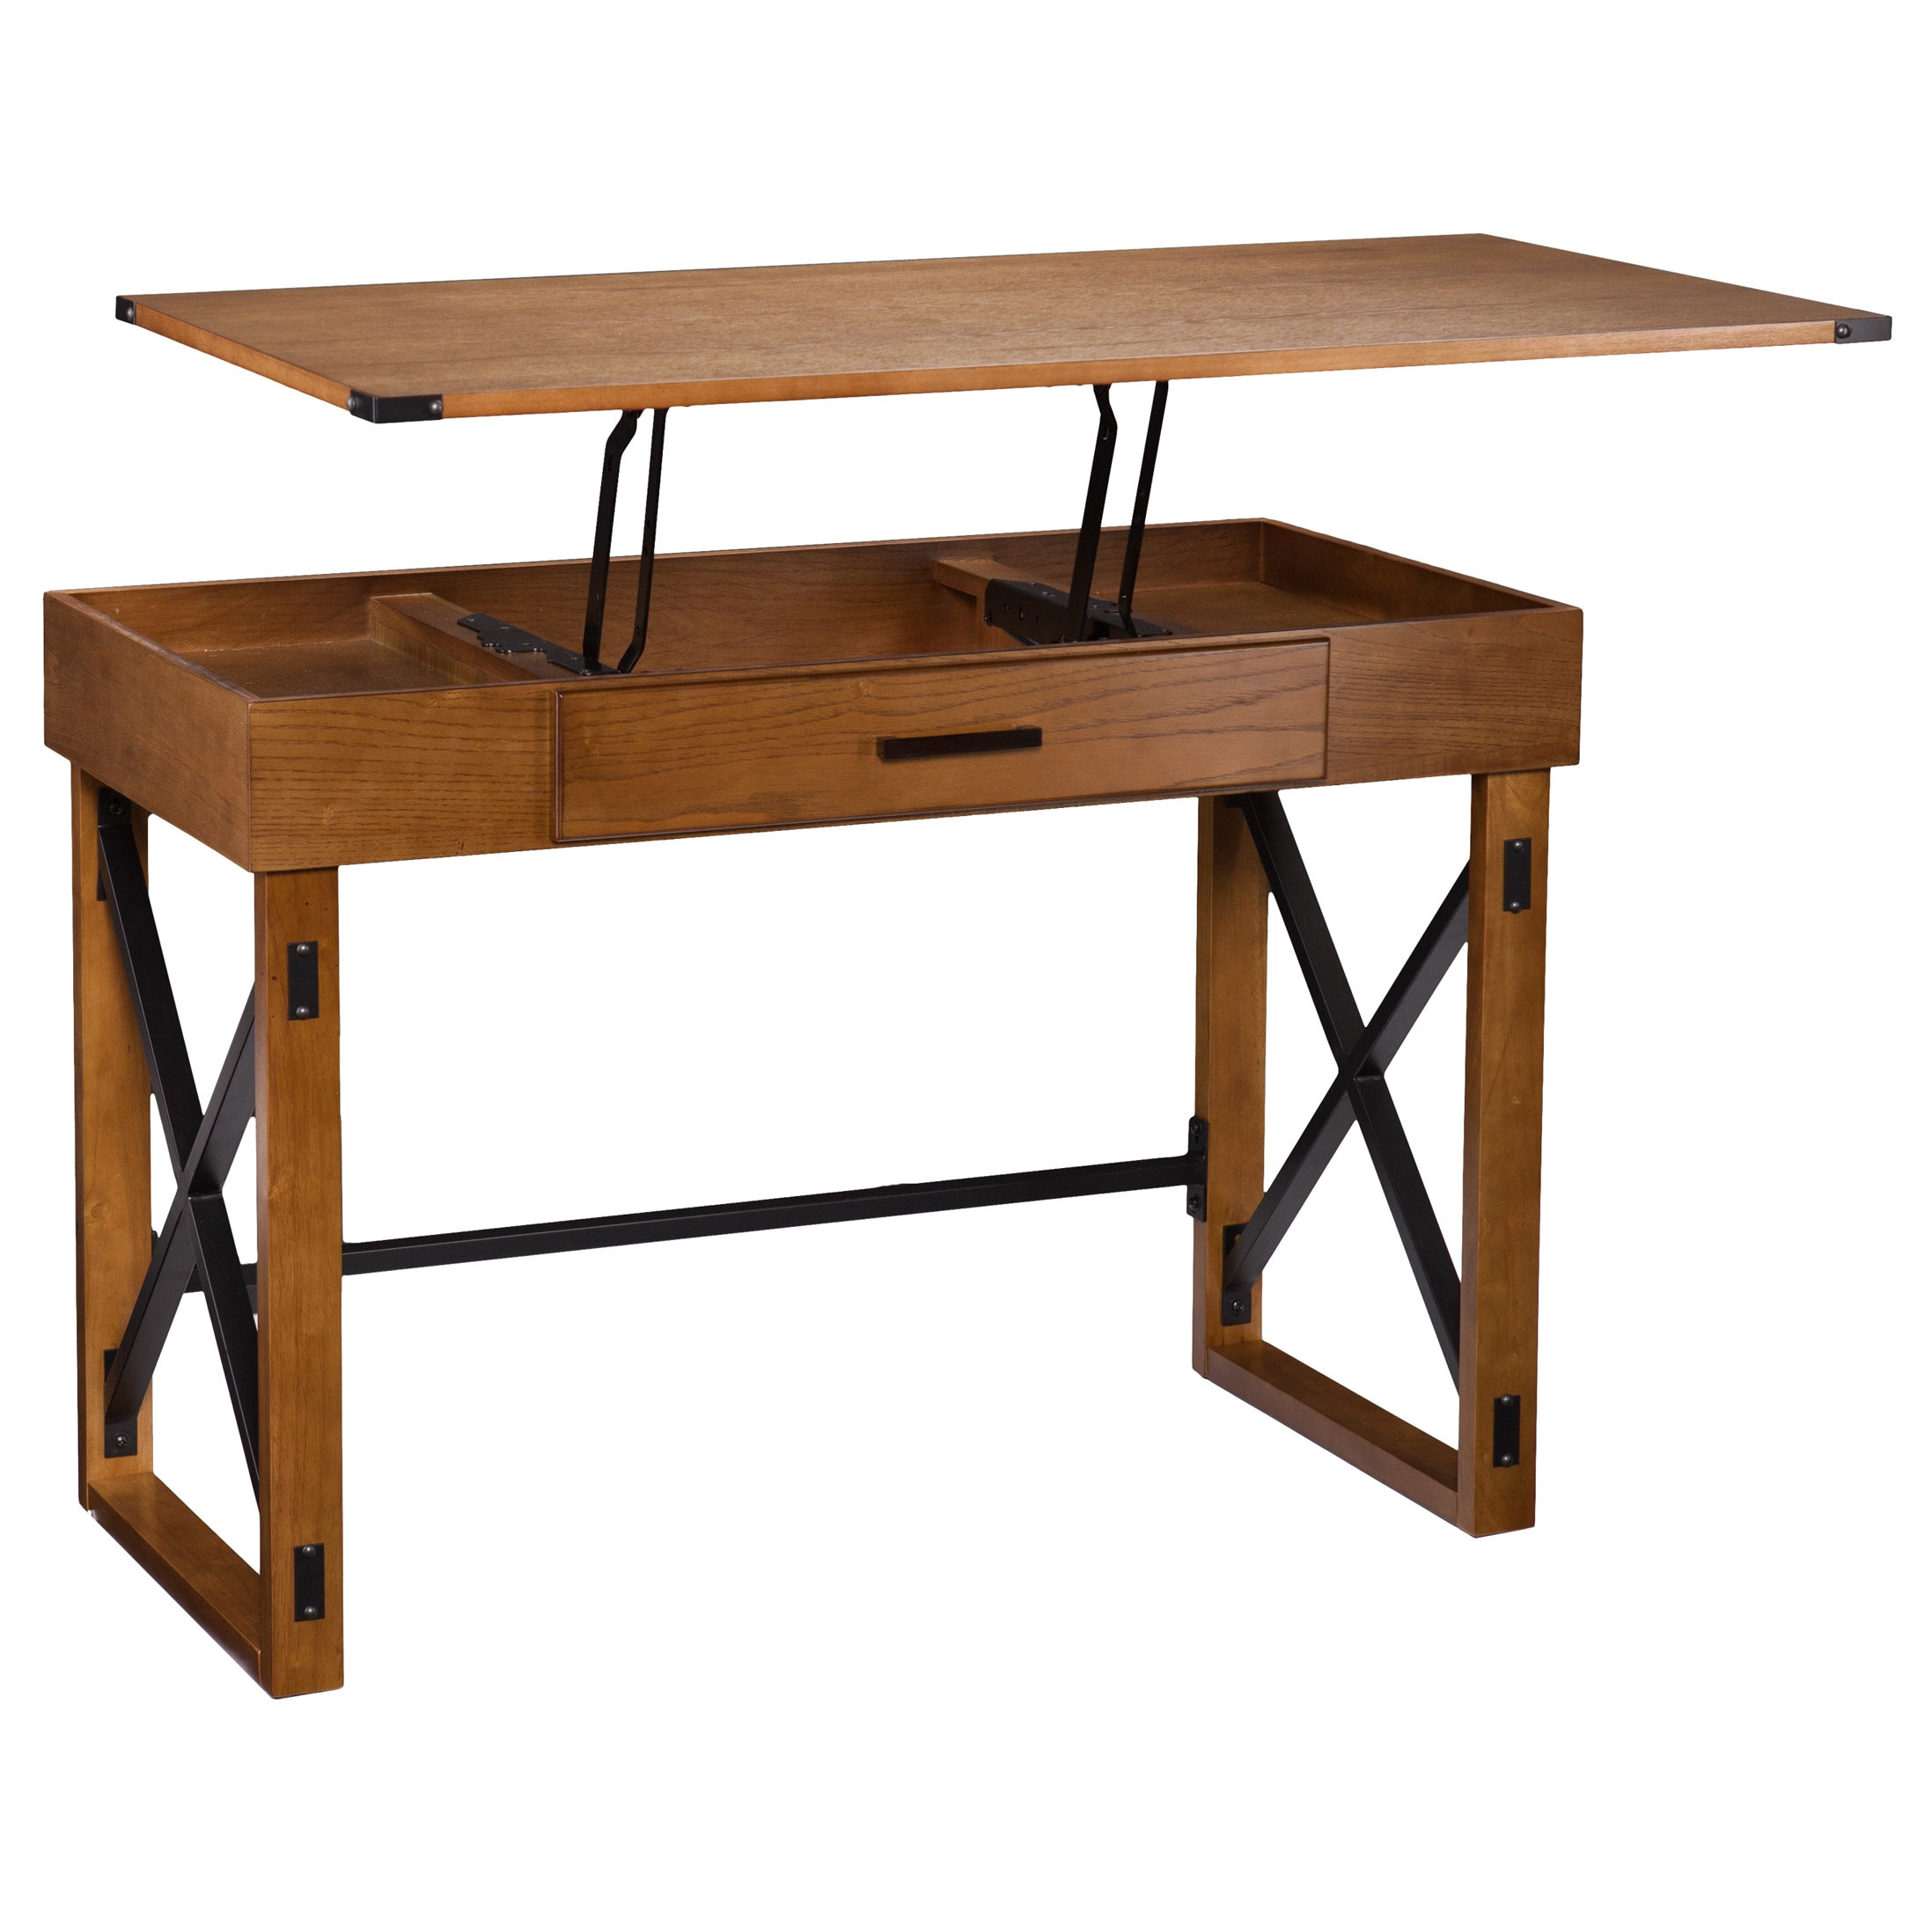 Adjustable Height Drafting Table Harper Blvd Carlan Distressed Pine Adjustable Height Desk